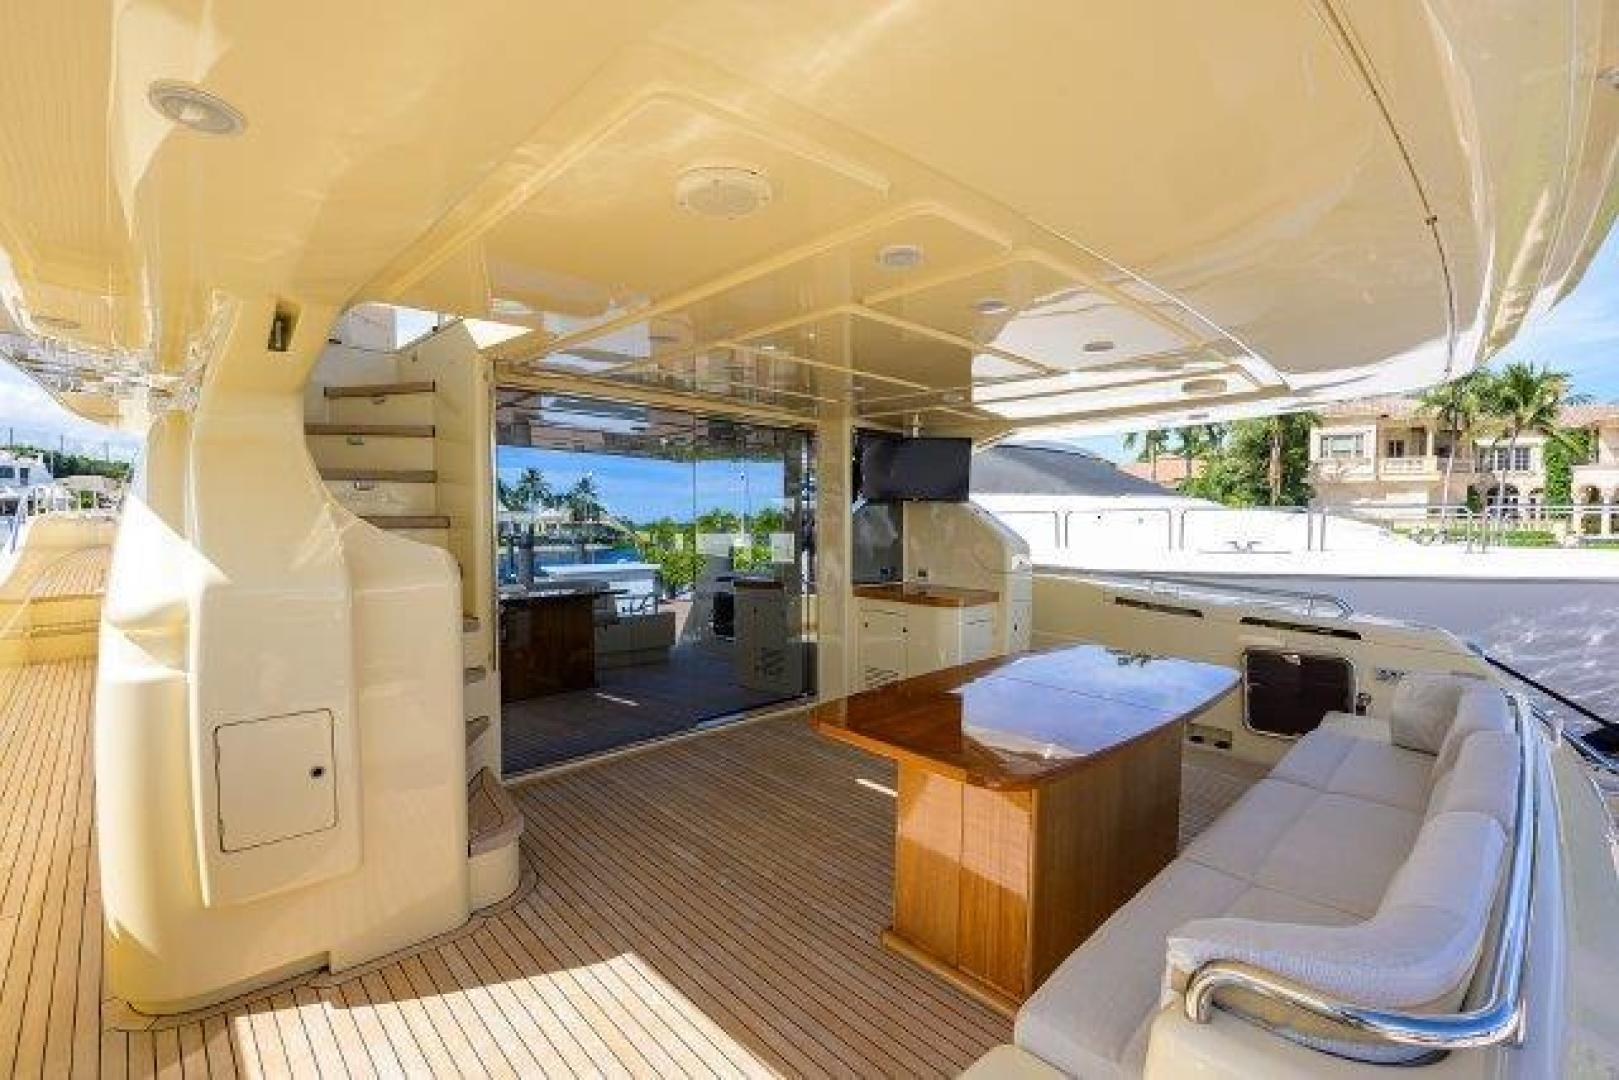 Ferretti Yachts-Altura 840 2010-MISS ALLIED Jupiter-Florida-United States-Aft Deck-1518356 | Thumbnail